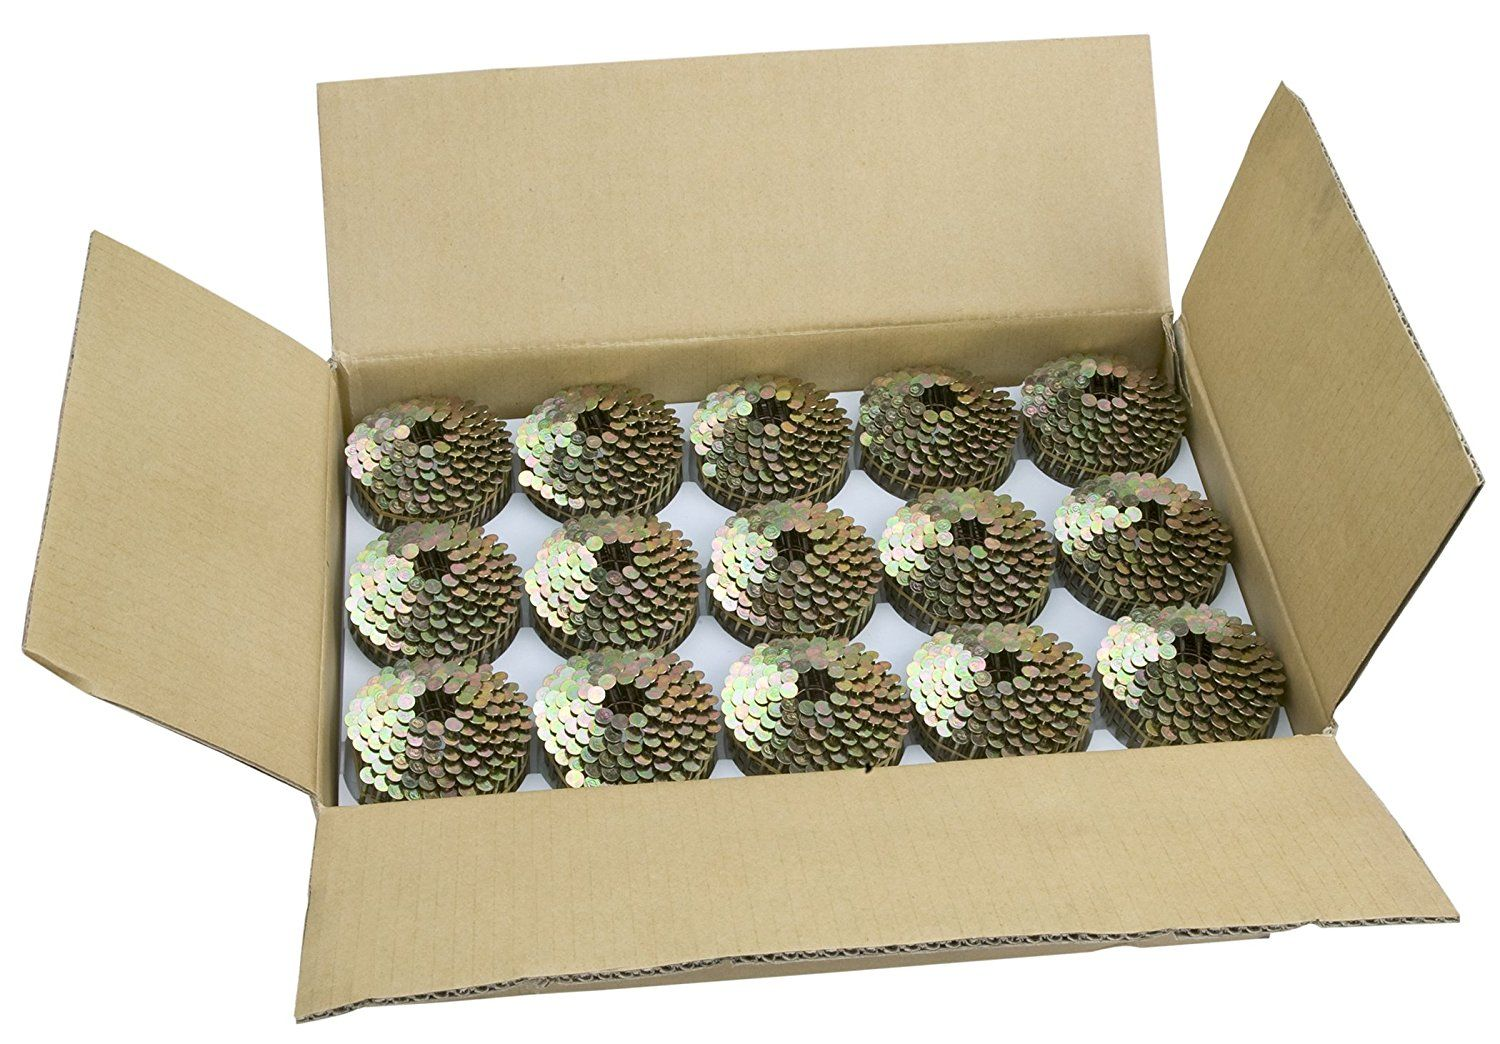 Grizzly G6774 1 15 Deg Coil Galvanized Roofing Nails 7200 Pc You Can Find More Details By Visiting The Image Link Roofing Nails Galvanized Roofing Roofing